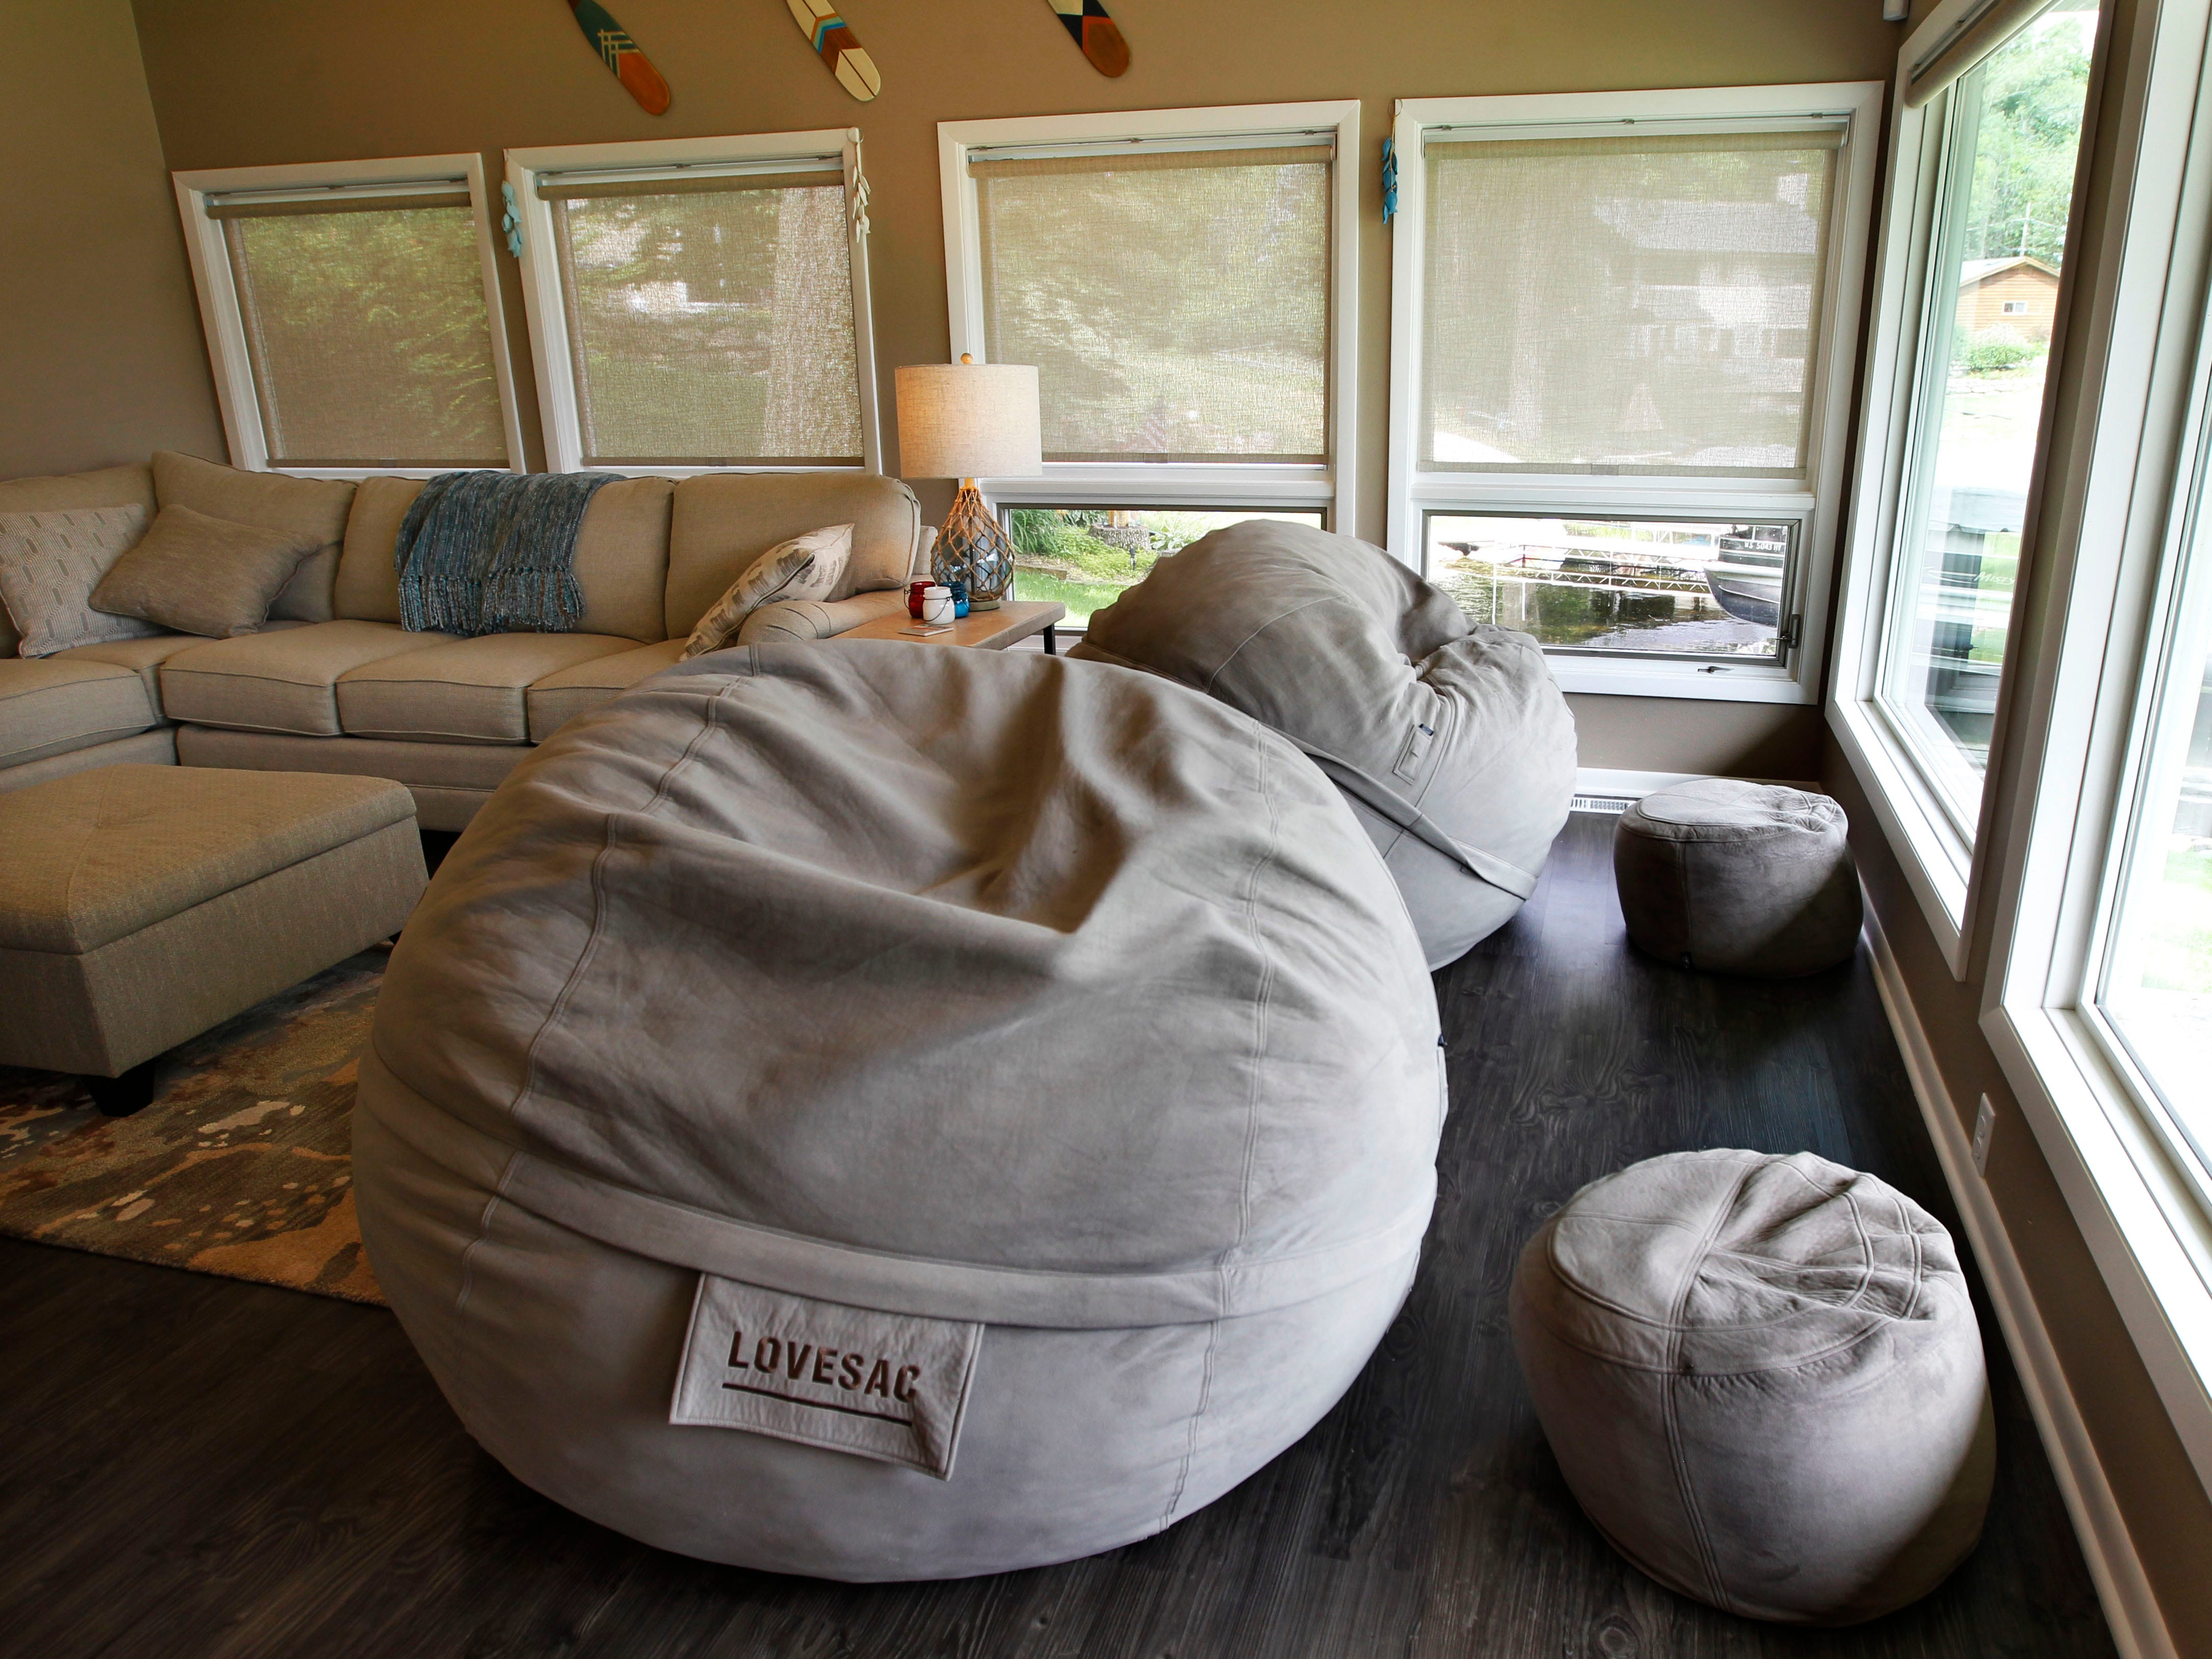 Matching LoveSac bean bags offer  cozy and comfy seating in the family room.